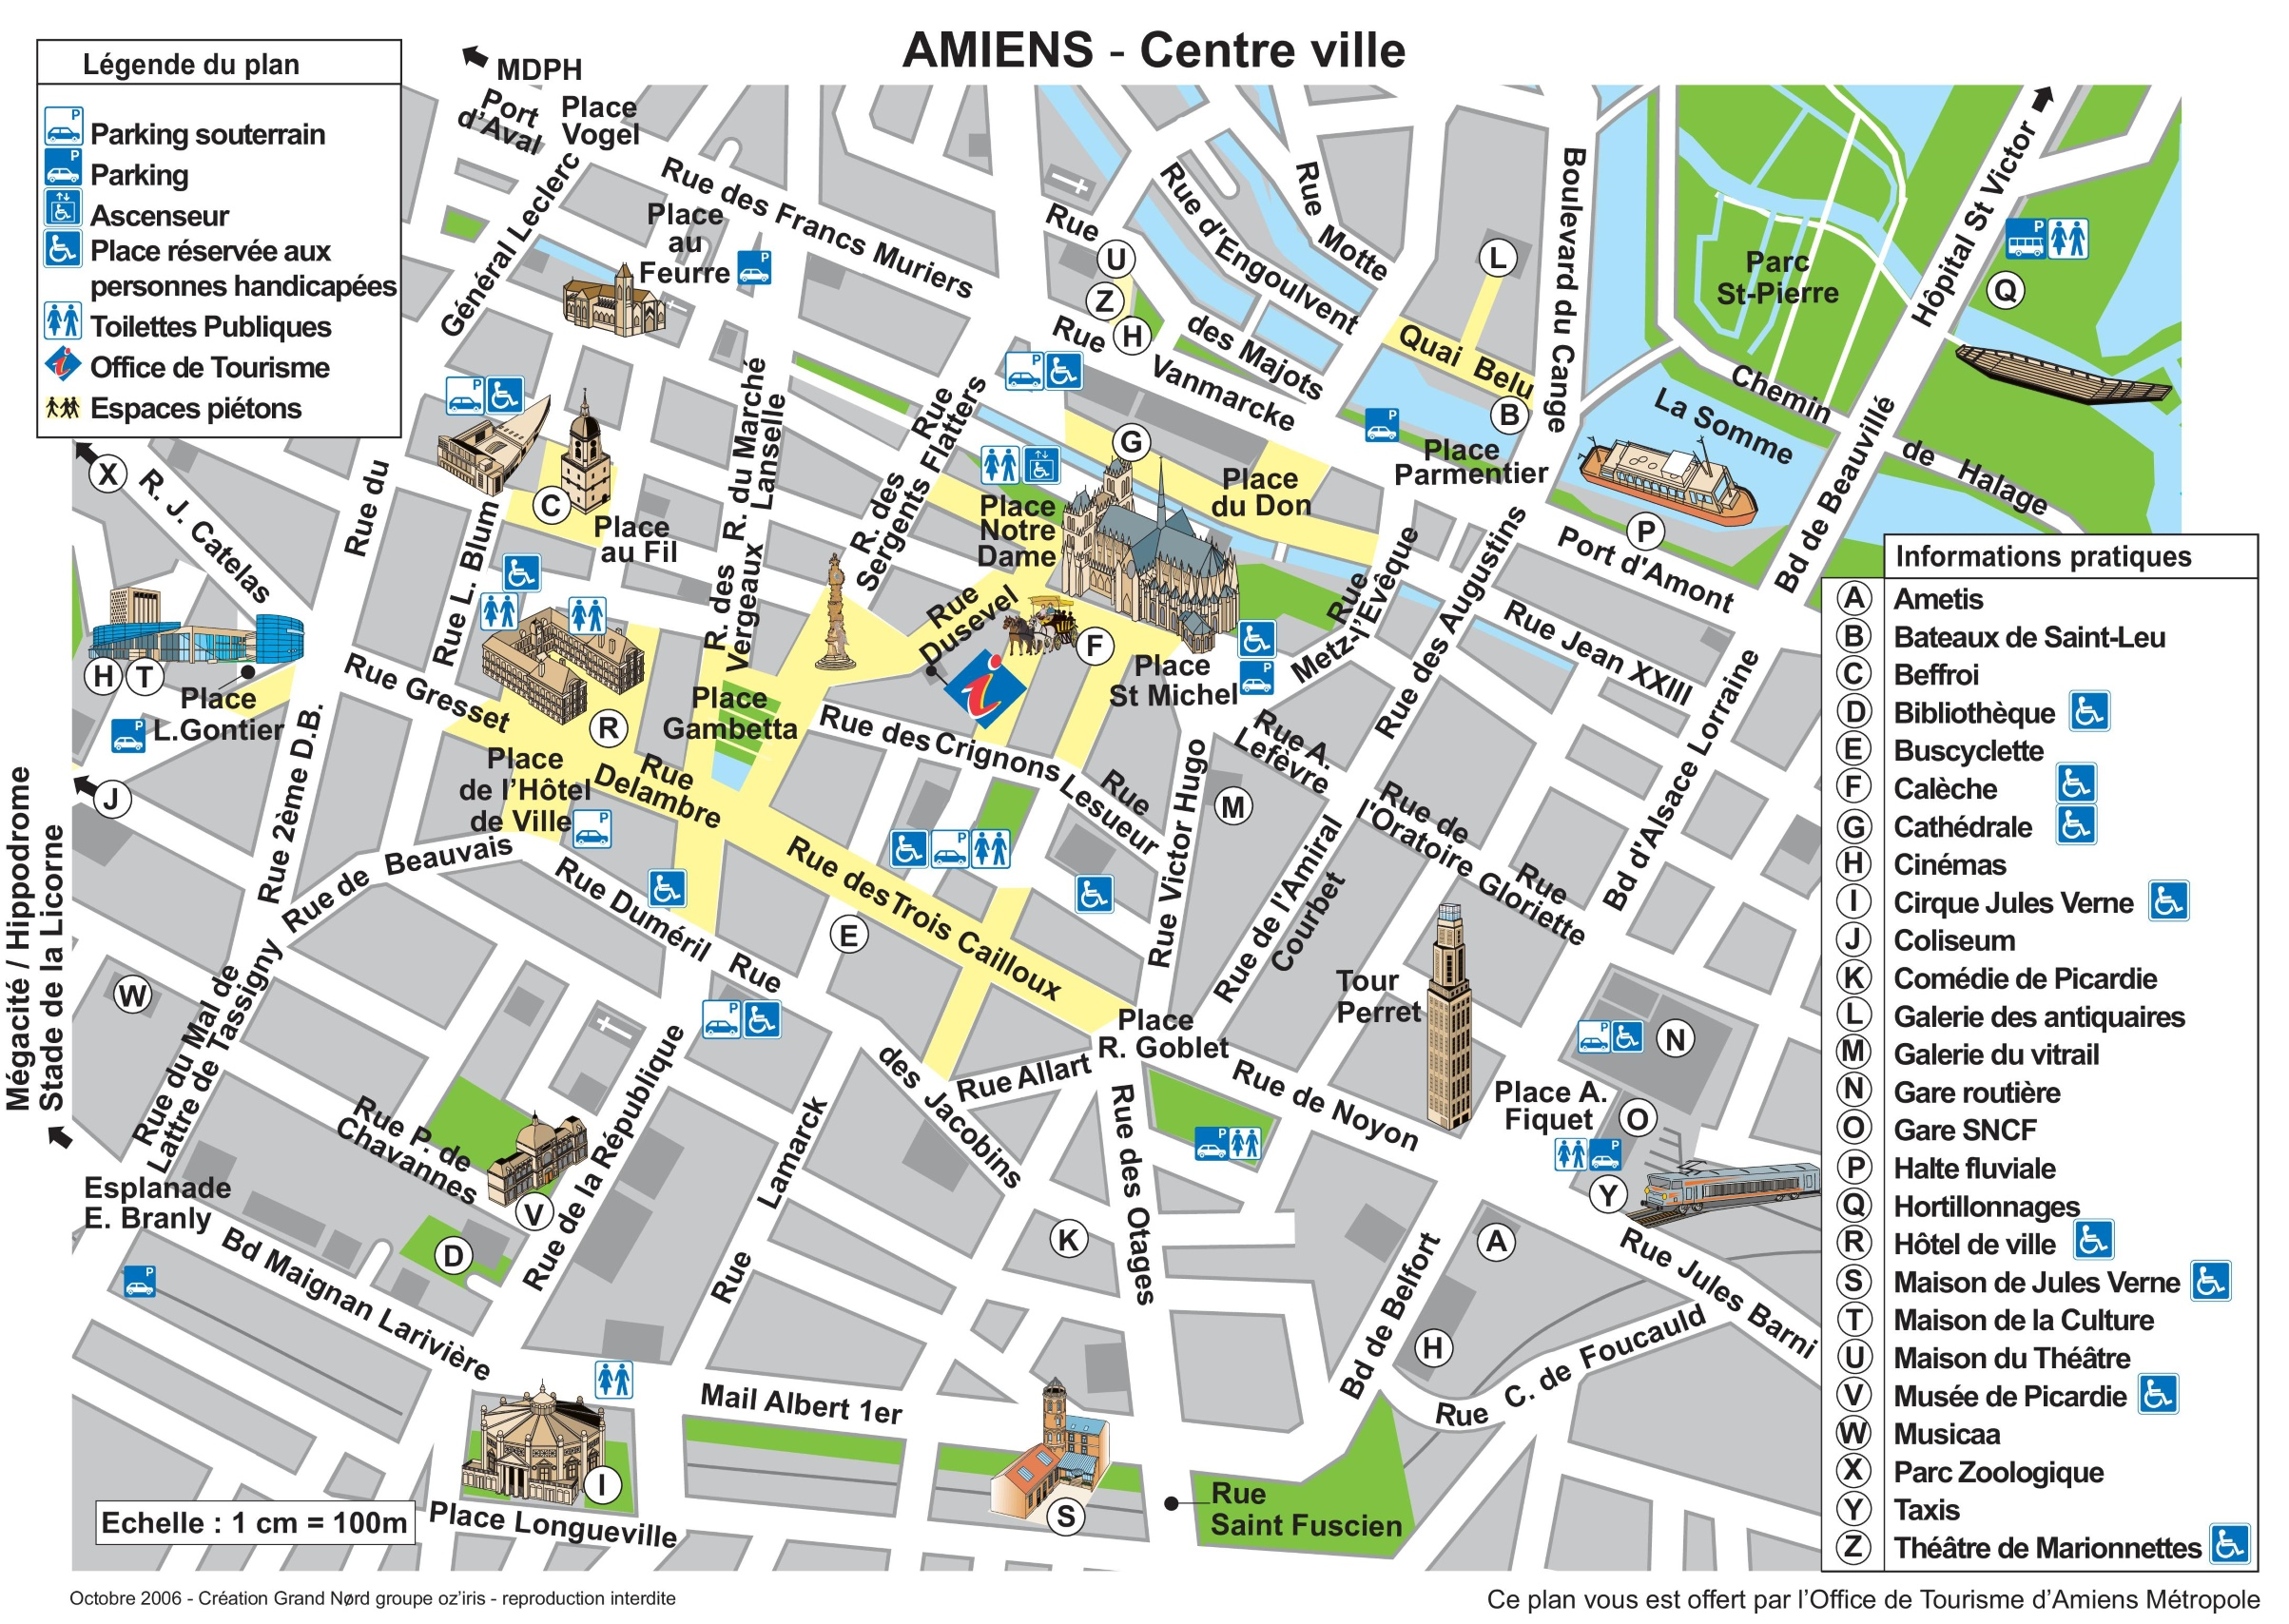 Amiens city center map